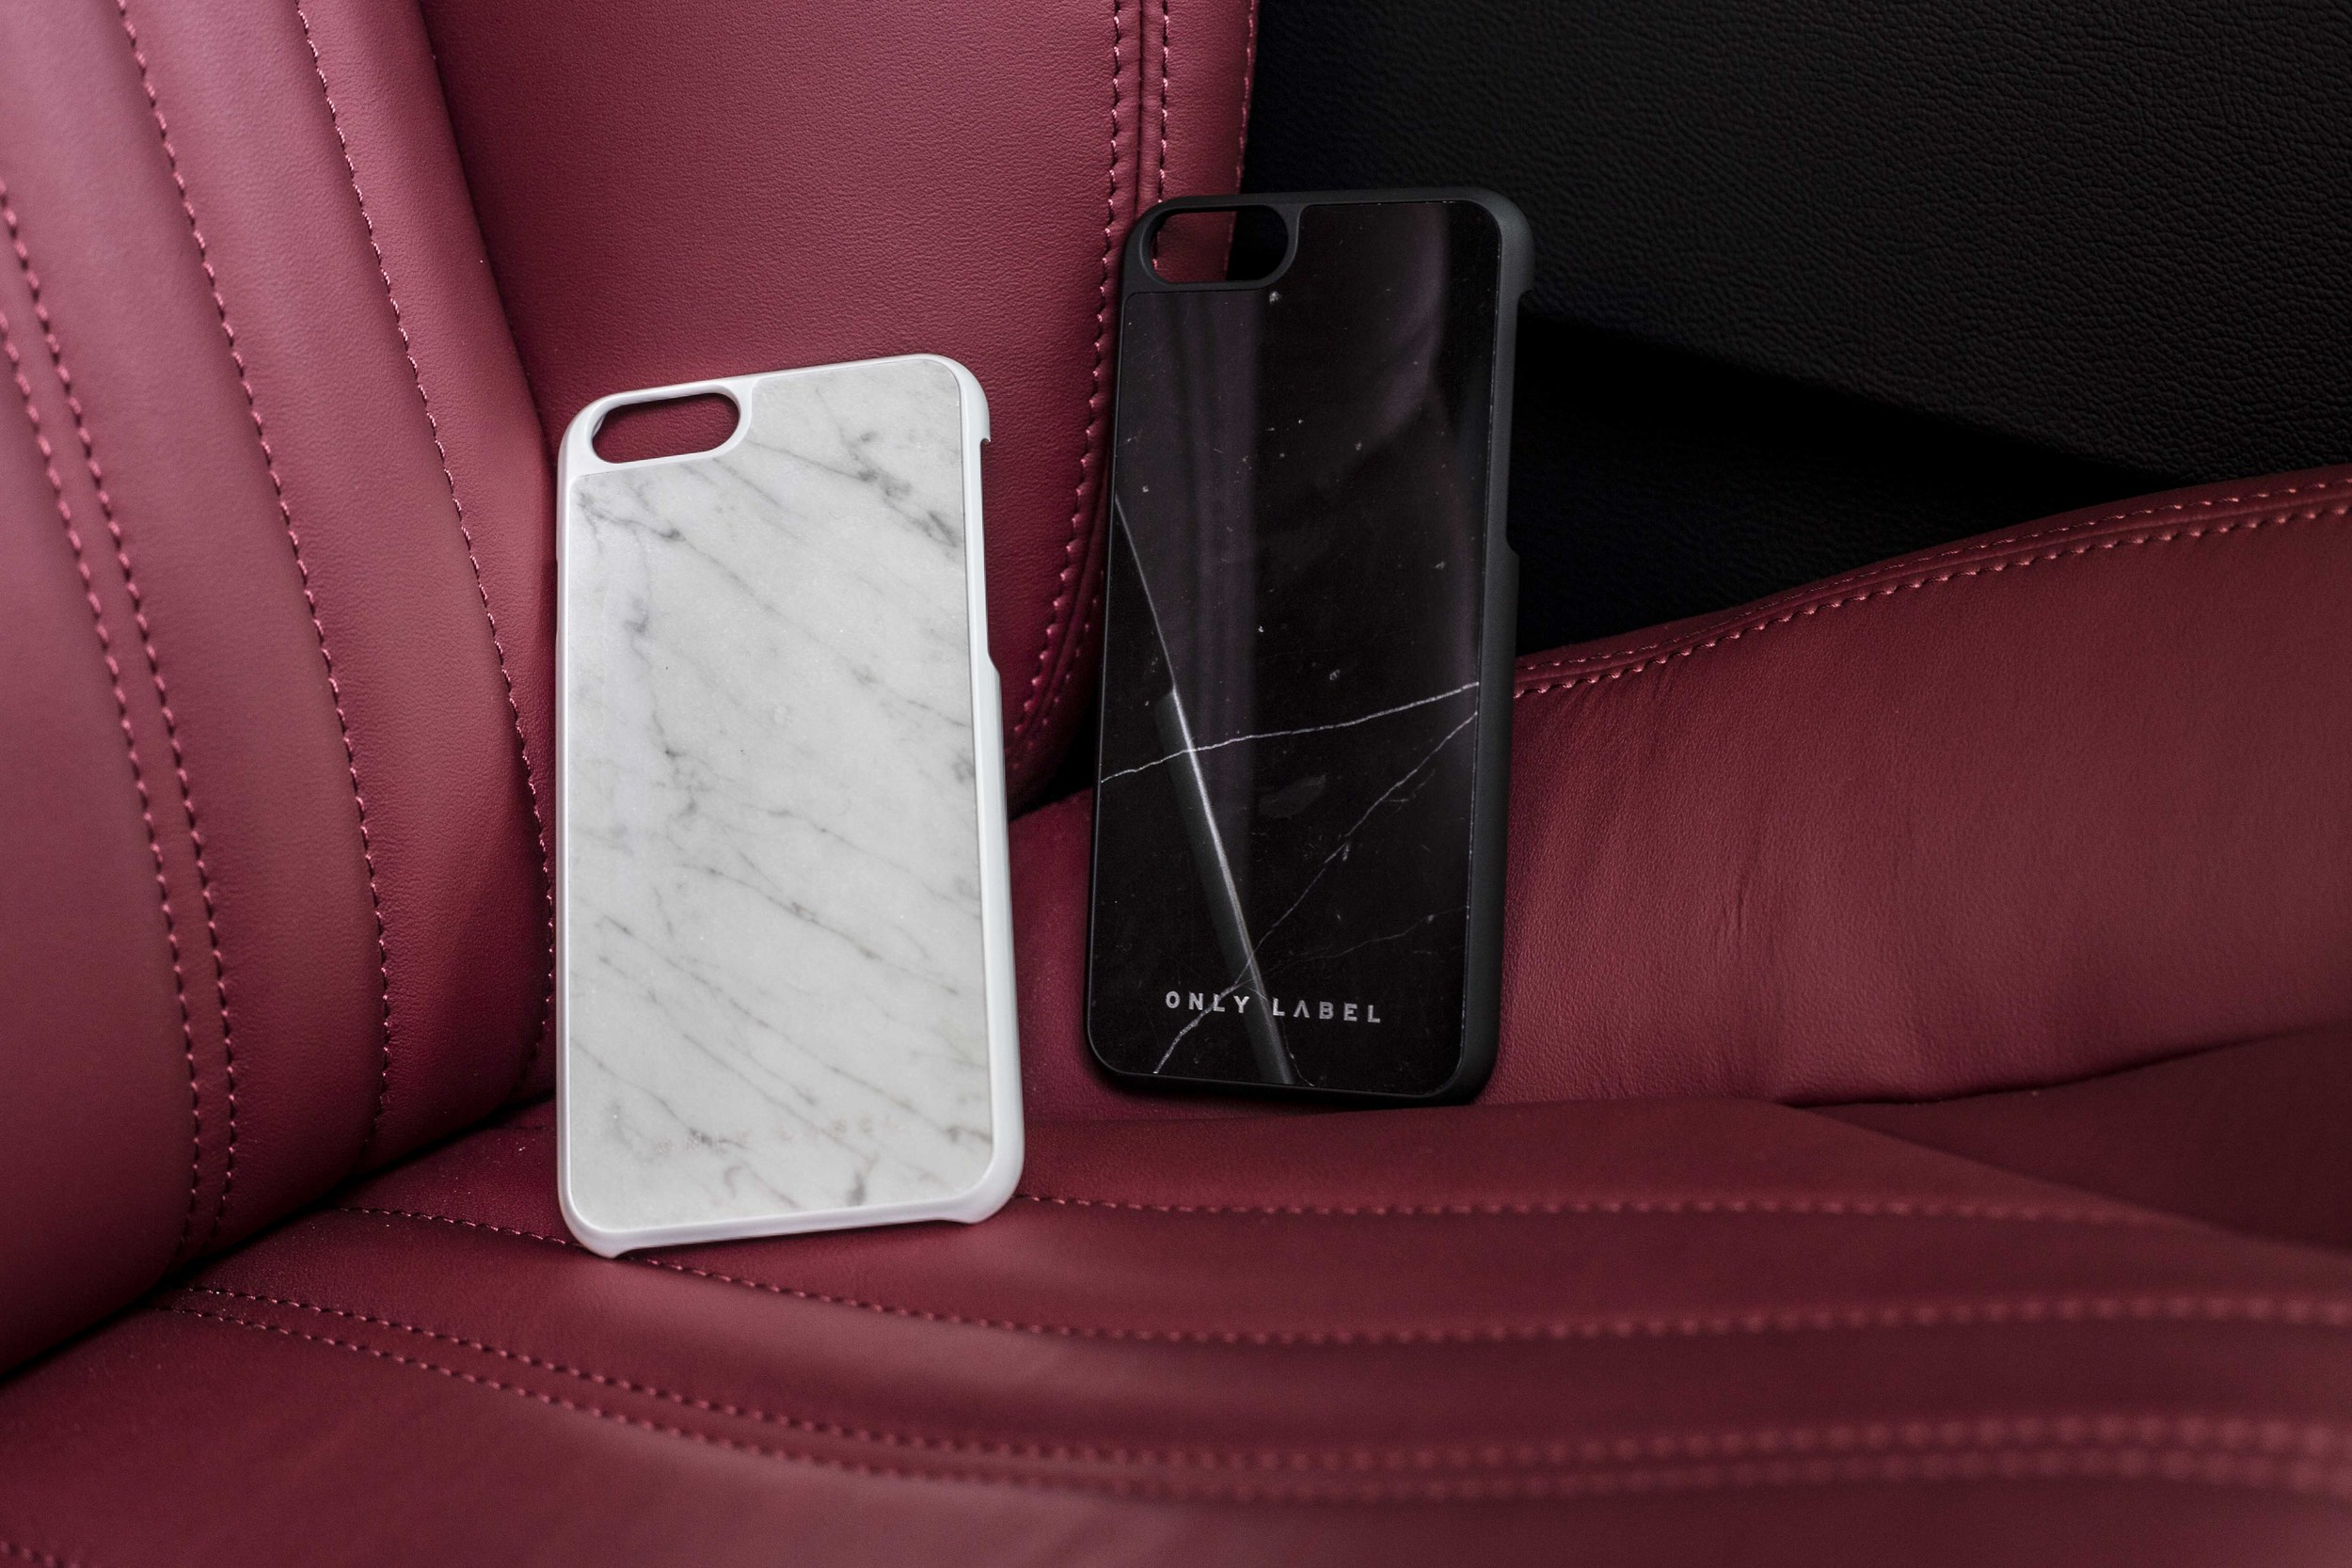 Only Label Marble Case-2208.jpg